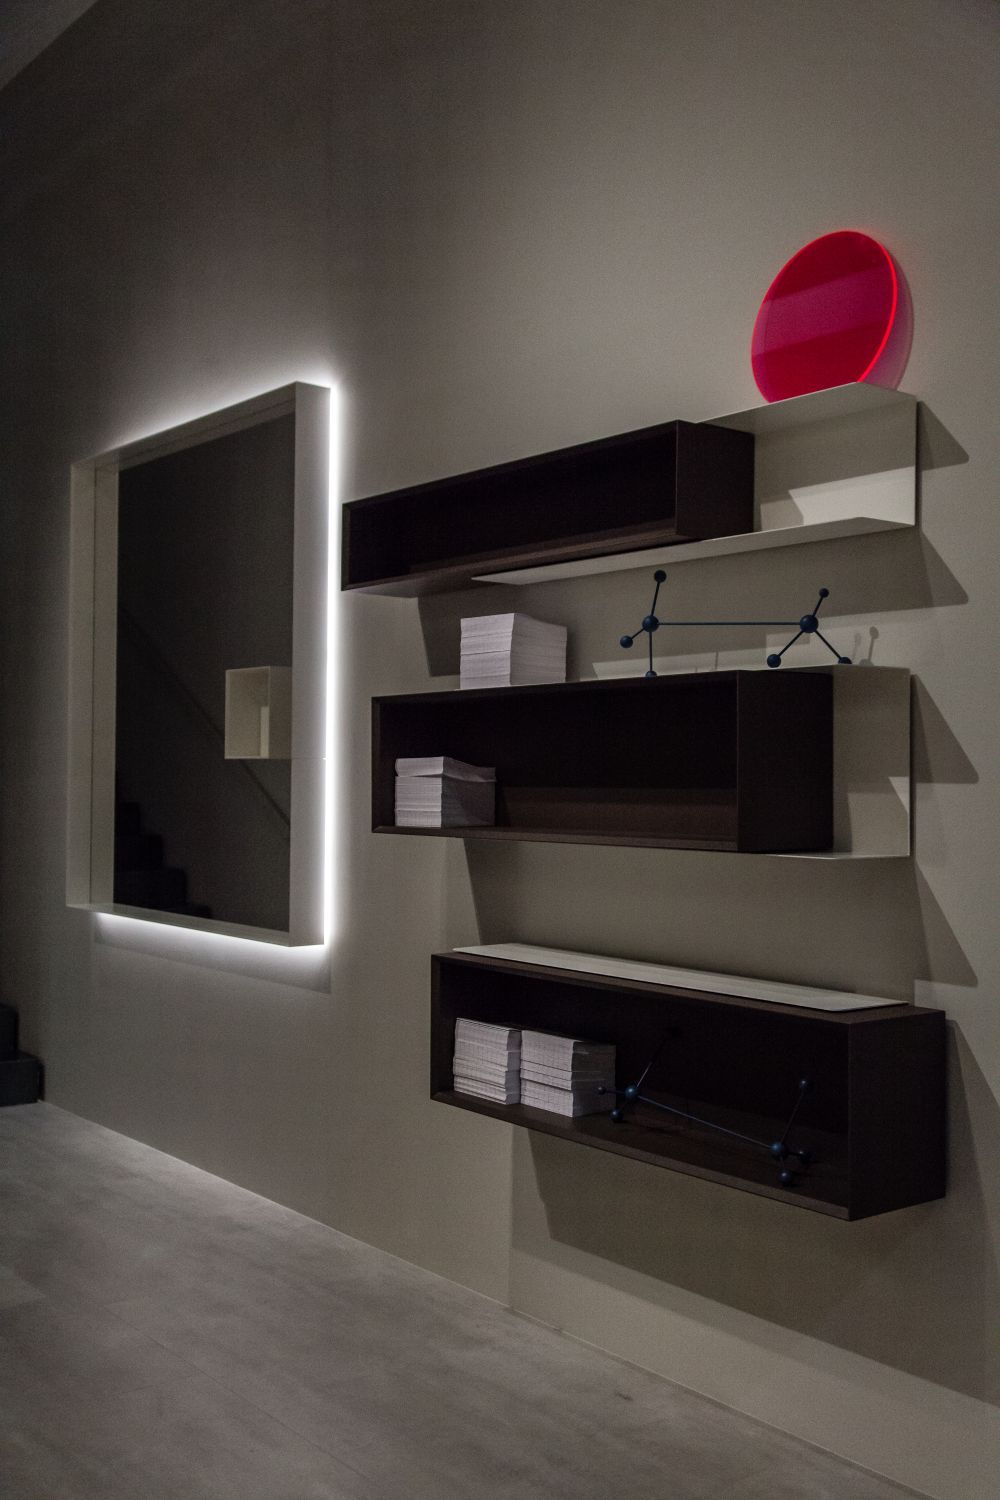 Box-style shelves like these ones are great because they look neat and they provide two surfaces on which to put things